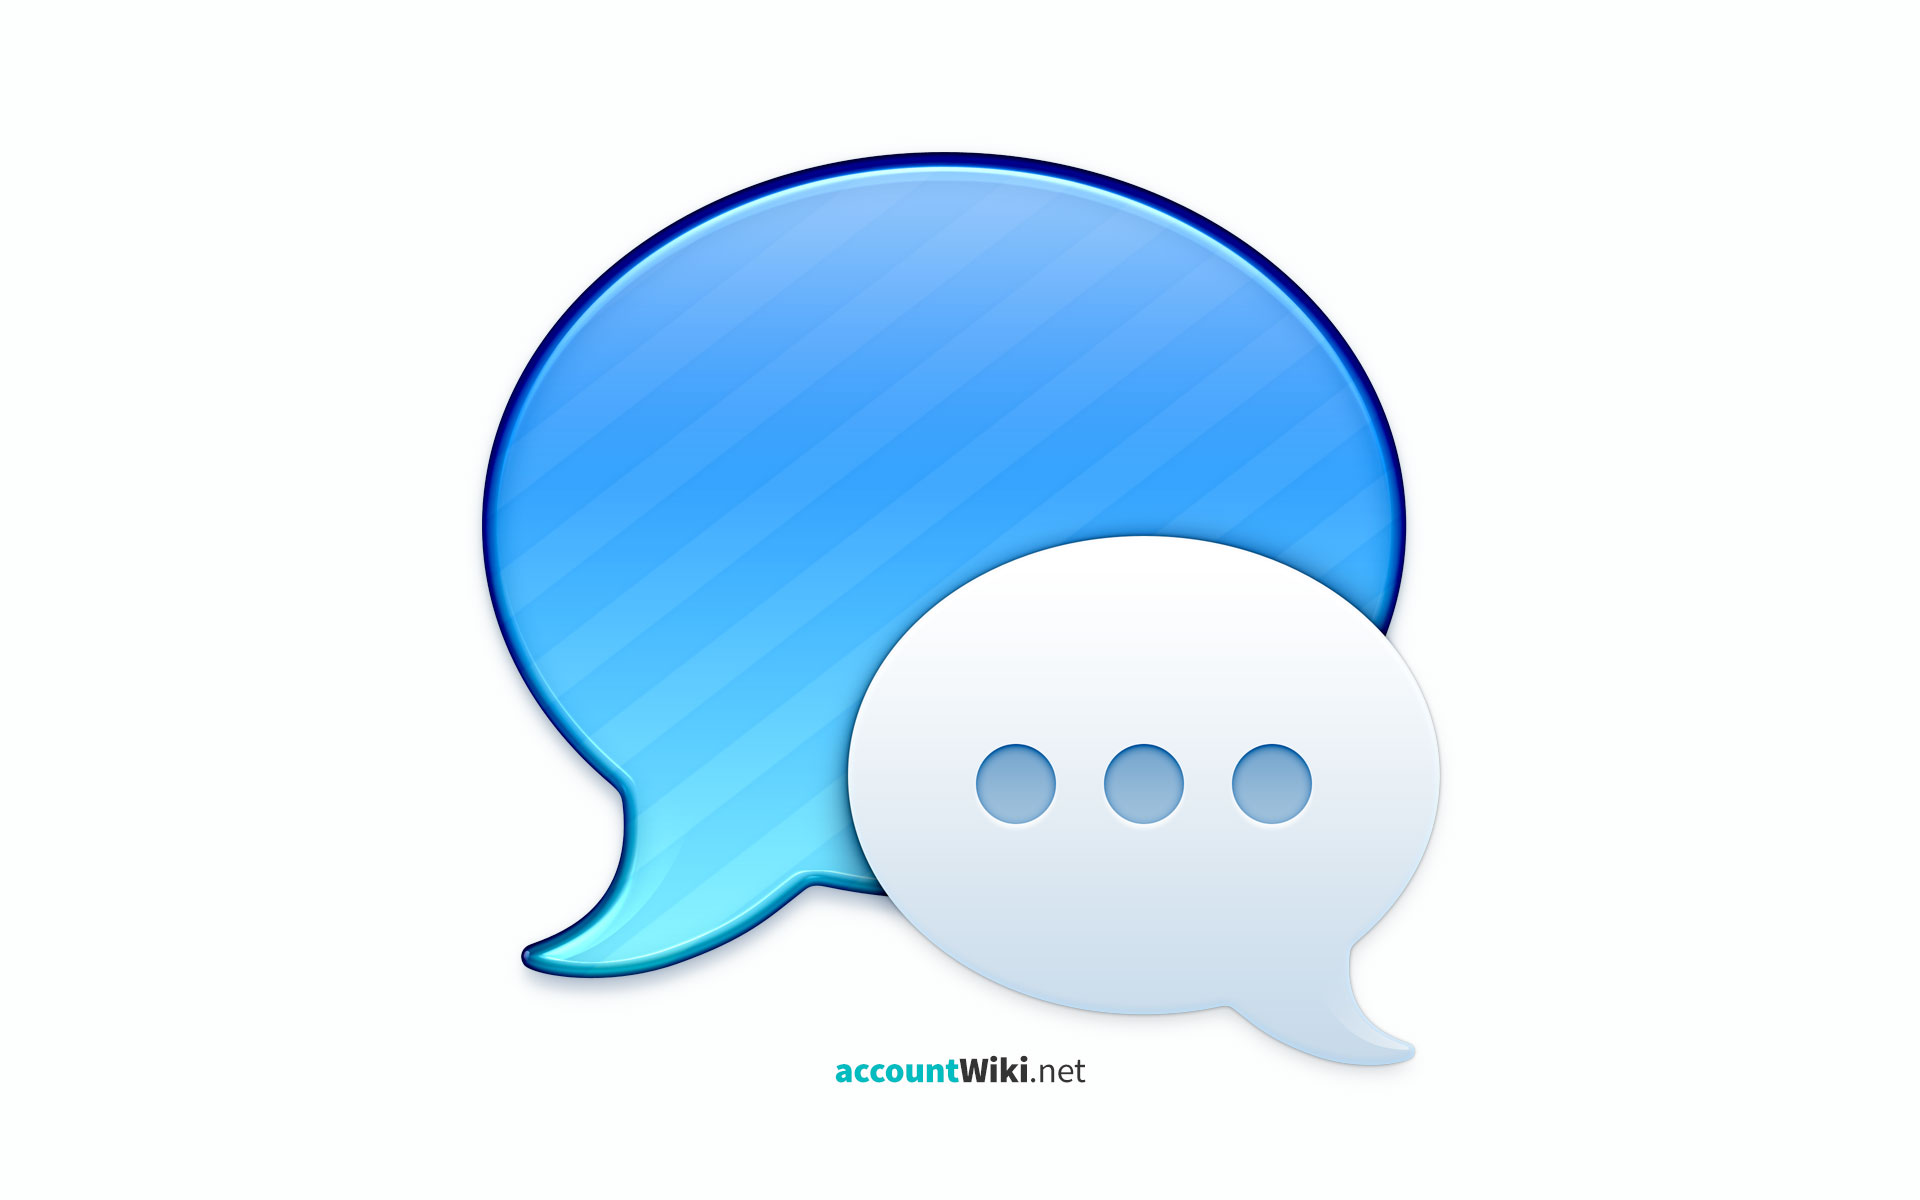 iMessage for PC - Download for Windows 7,8,10 - accountWiki net